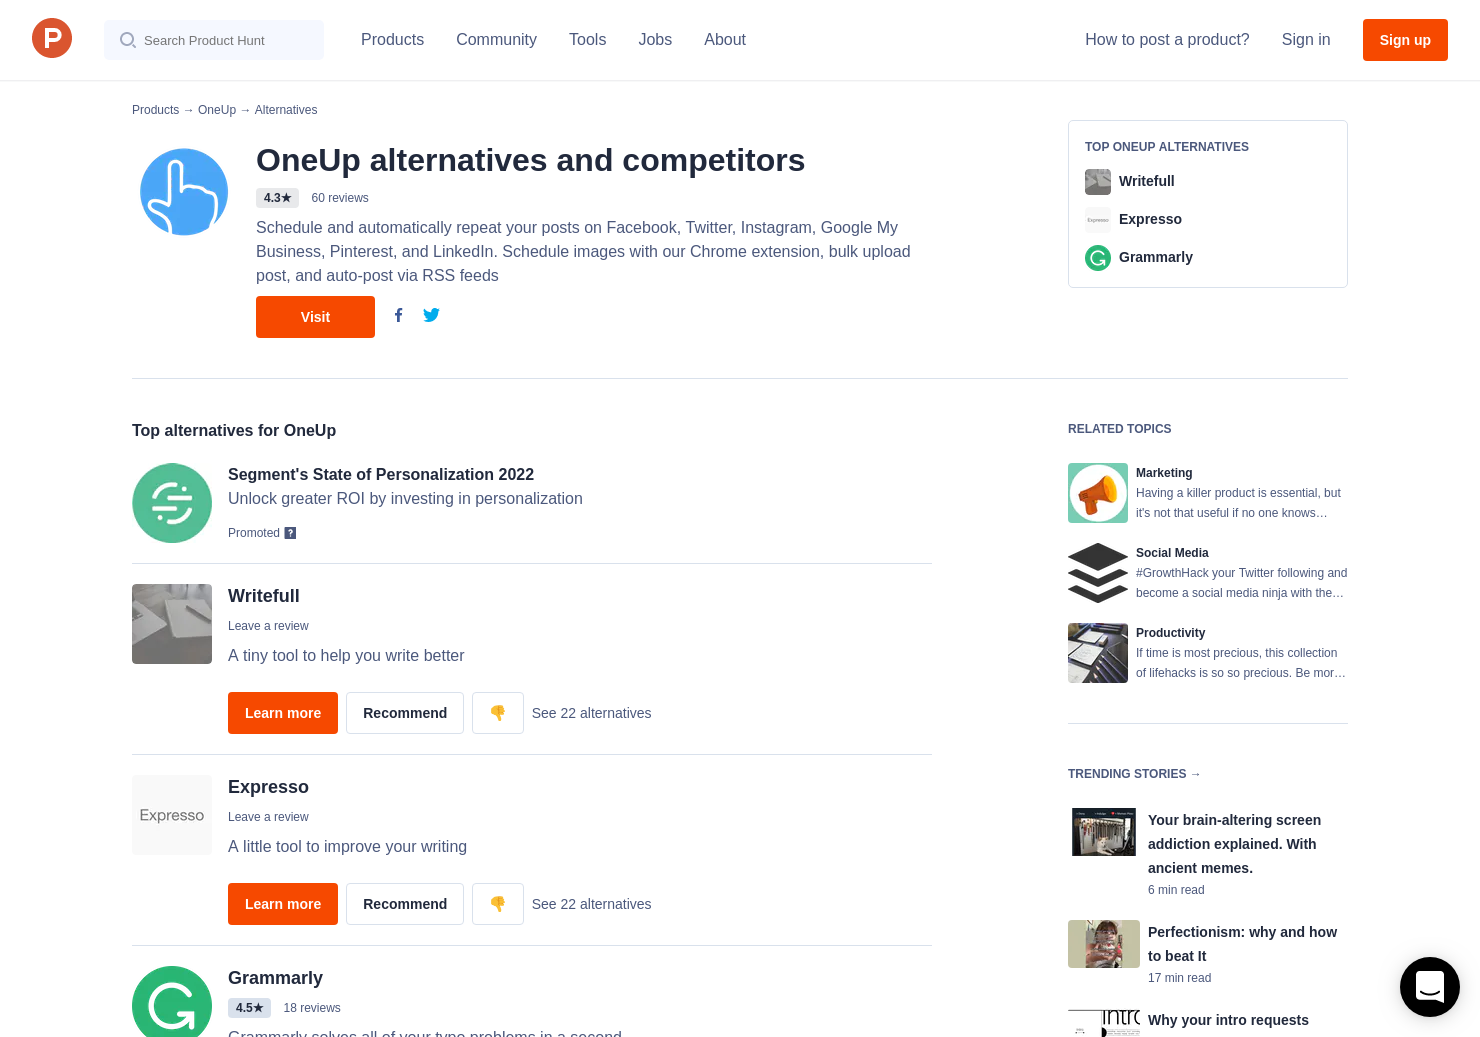 7 Alternatives to OneUp 2 0 | Product Hunt